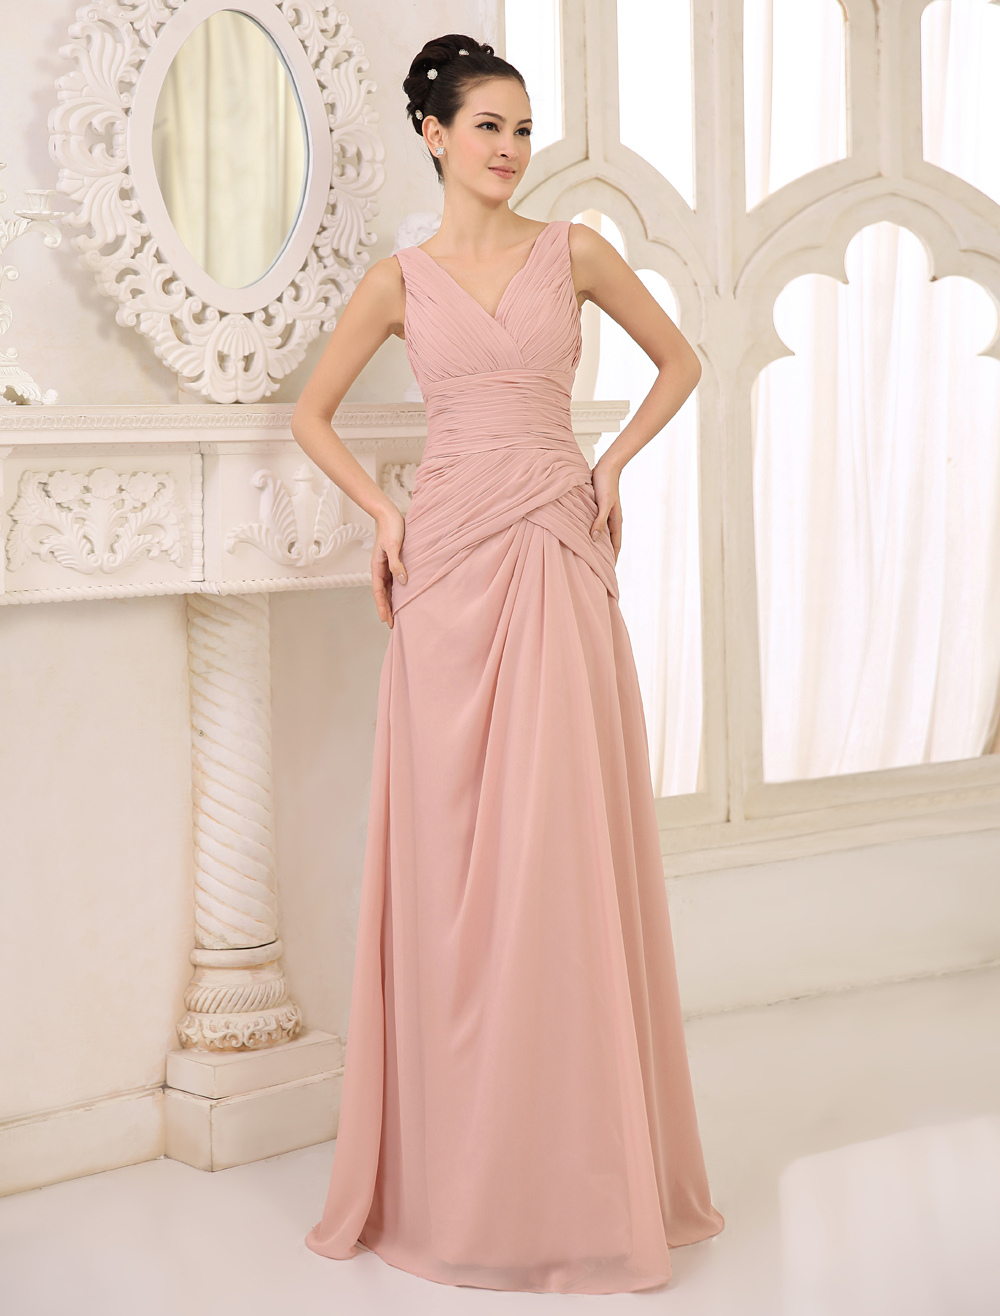 Blush Pink Bridesmaid Dress Chiffon Ruched Long Prom Dress V Neck Sleeveless Pleated Floor Length Wedding Party Dress